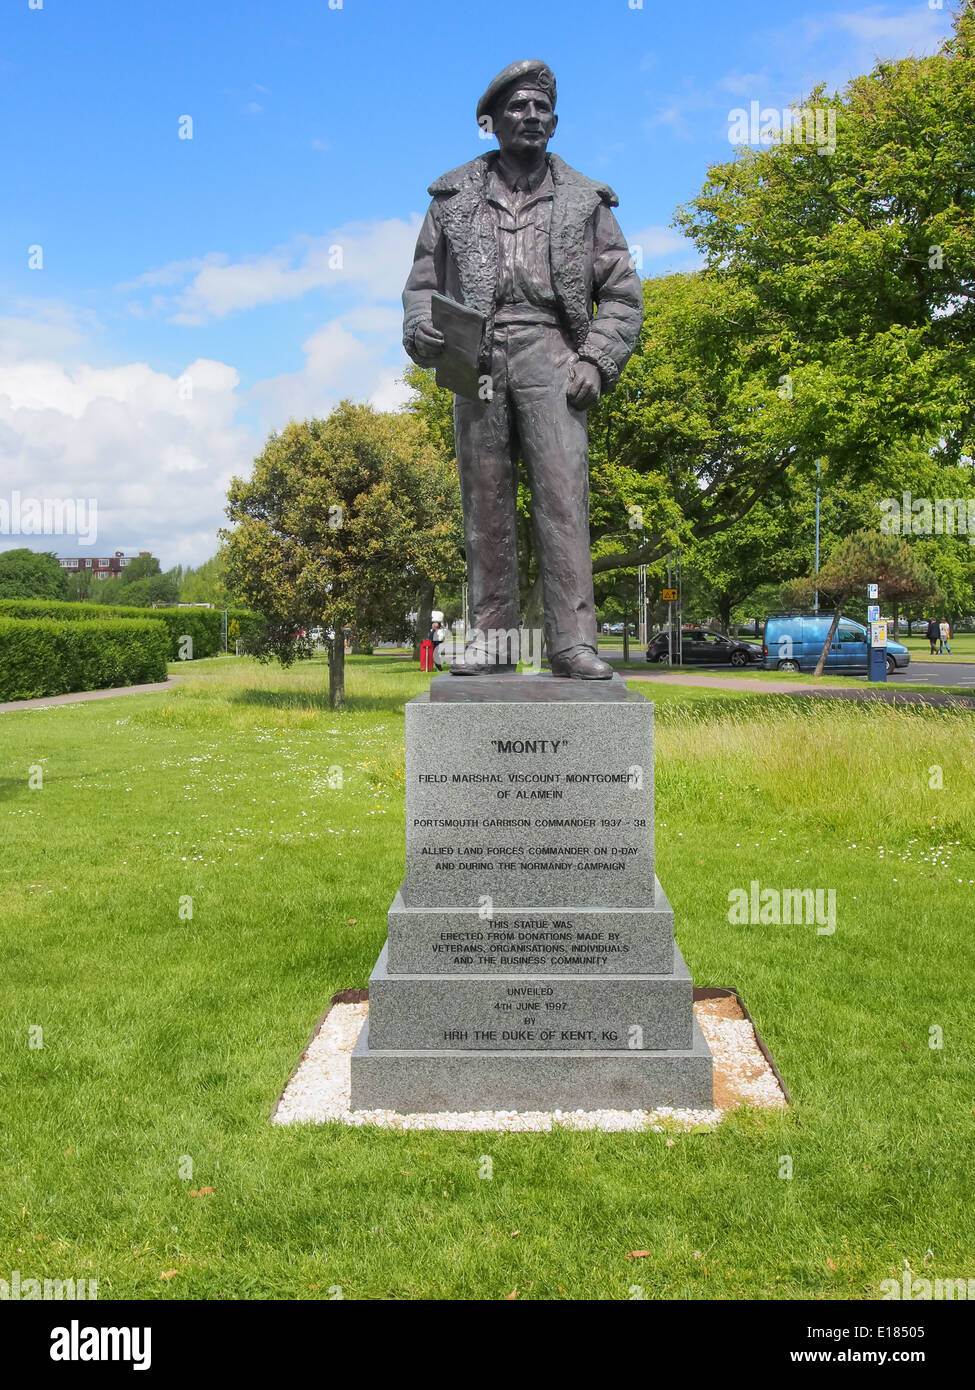 Statue of field marshal viscount Montgomery of Alamein in Southsea, Portsmouth, Hampshire, England - Stock Image